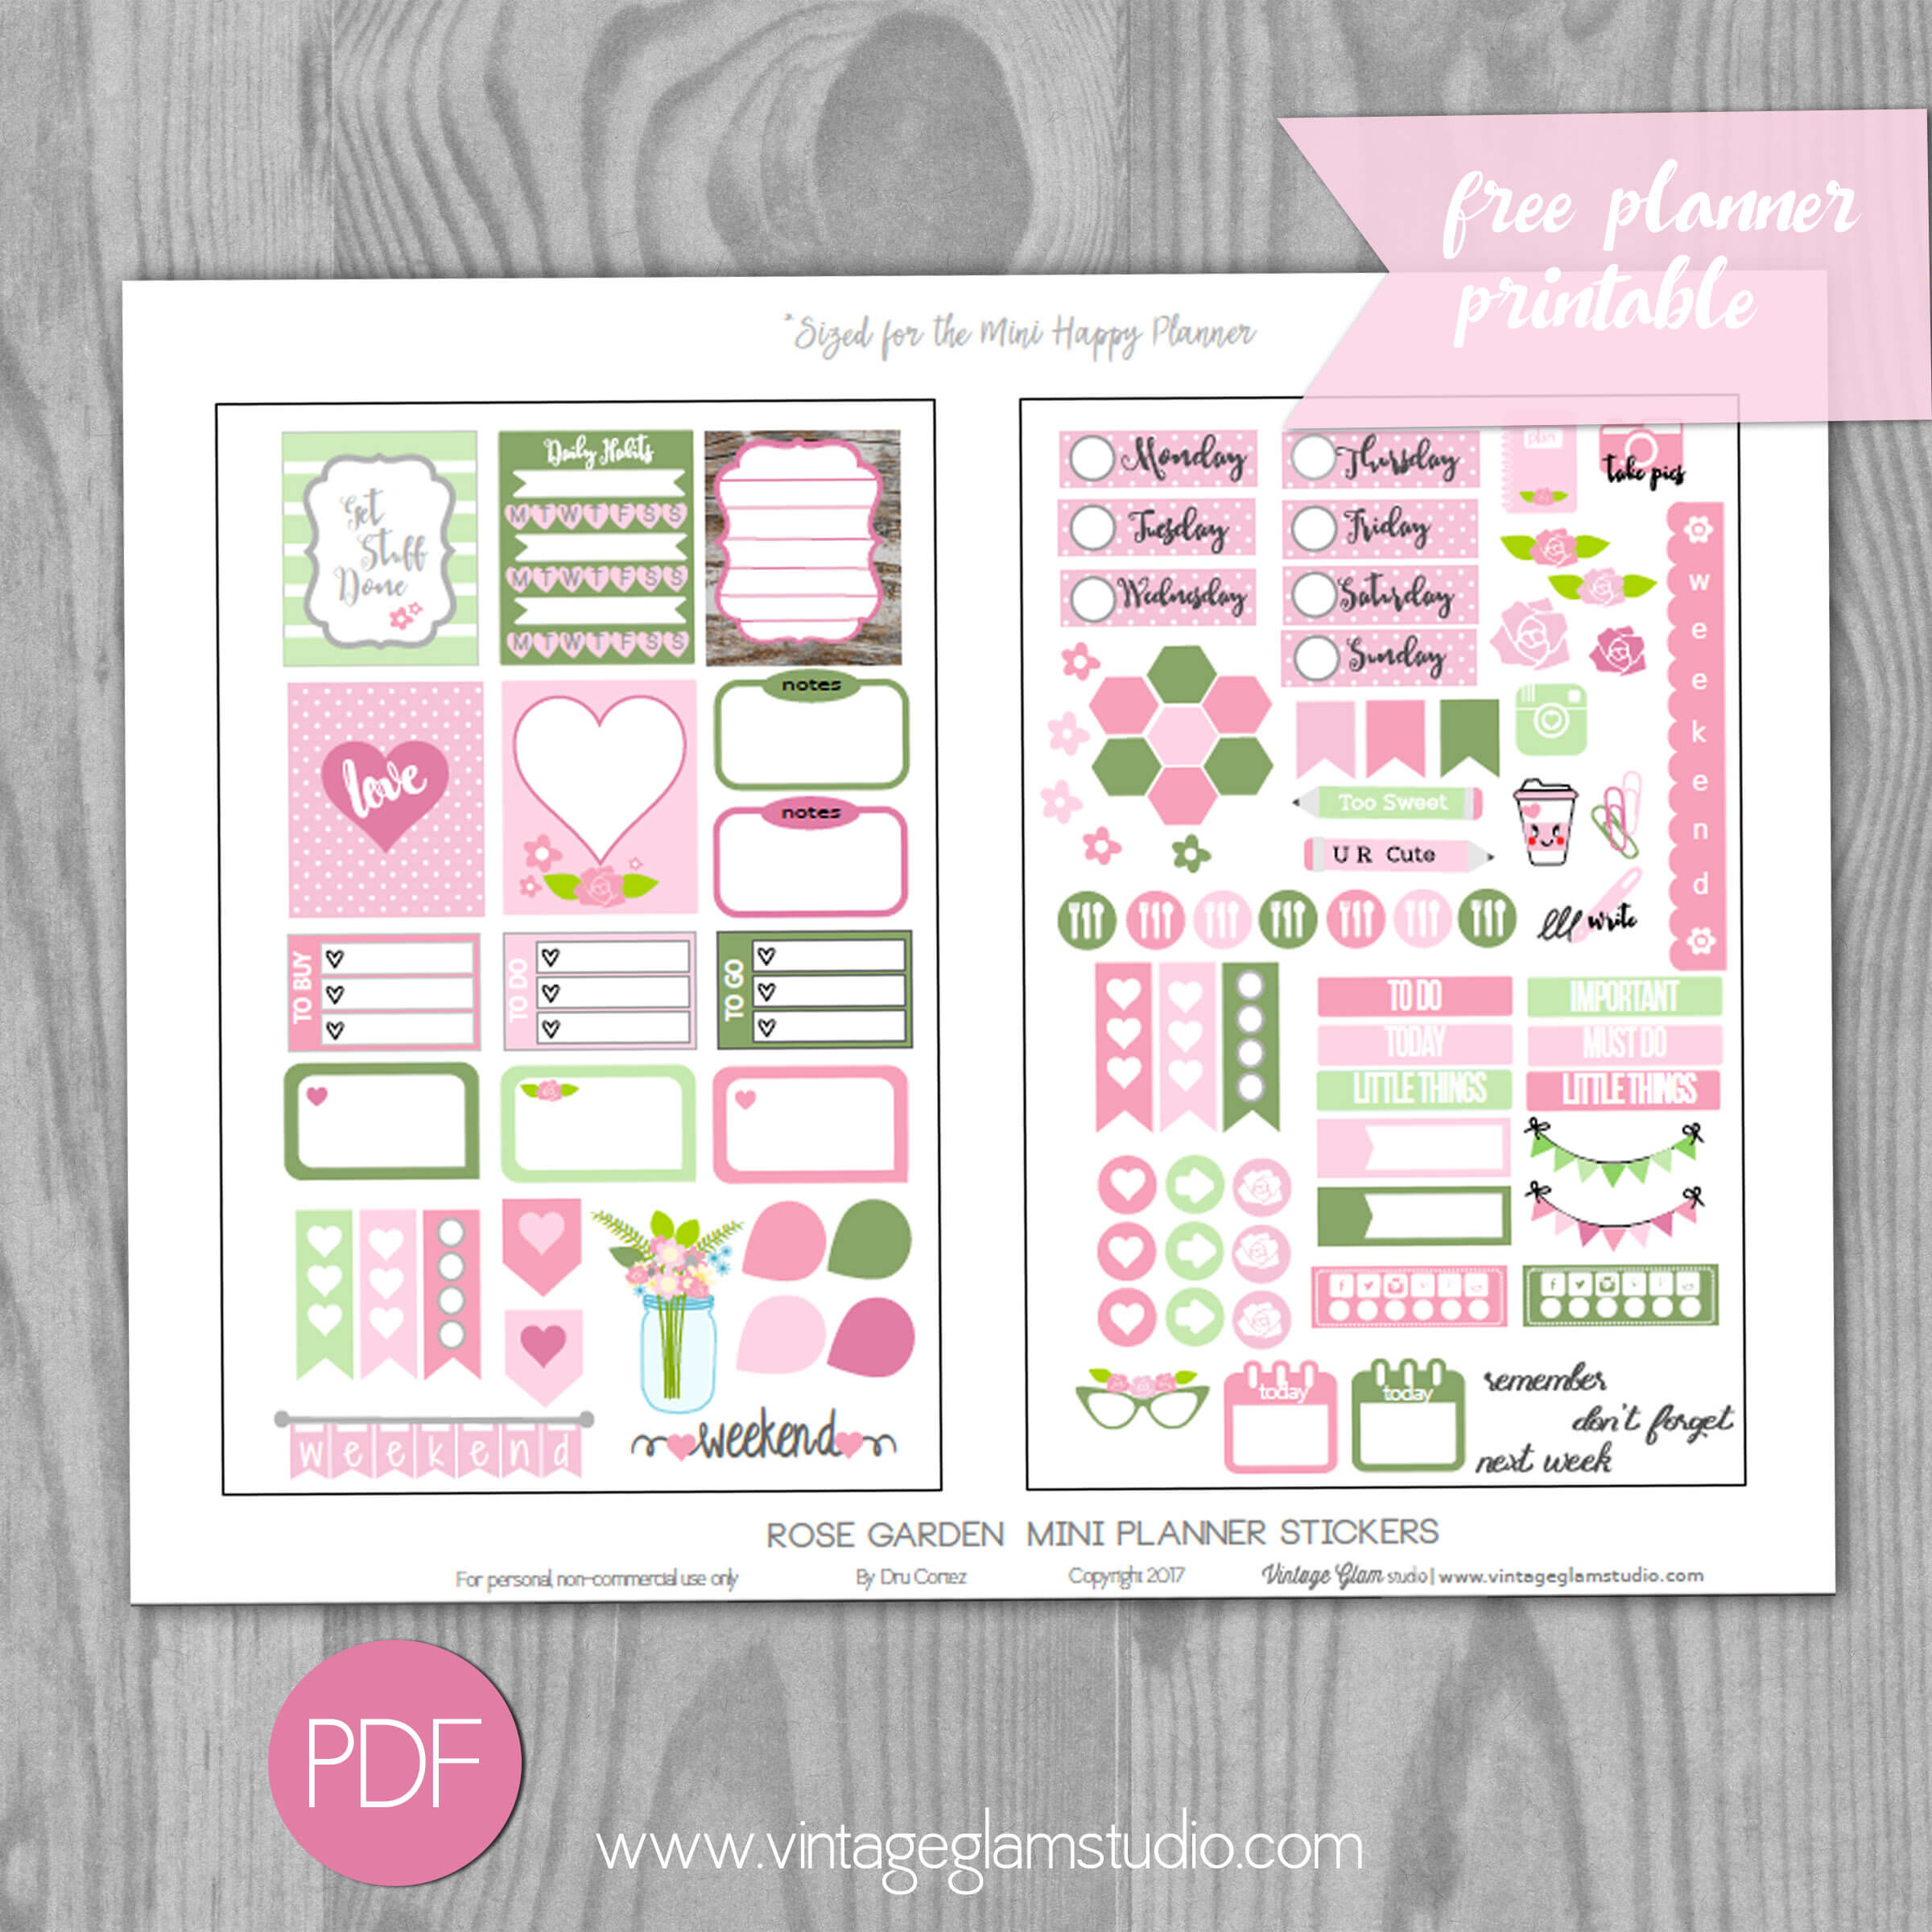 image regarding Free Printable Garden Planner referred to as Mini Delighted Planner - Rose Yard Planner Stickers - Typical